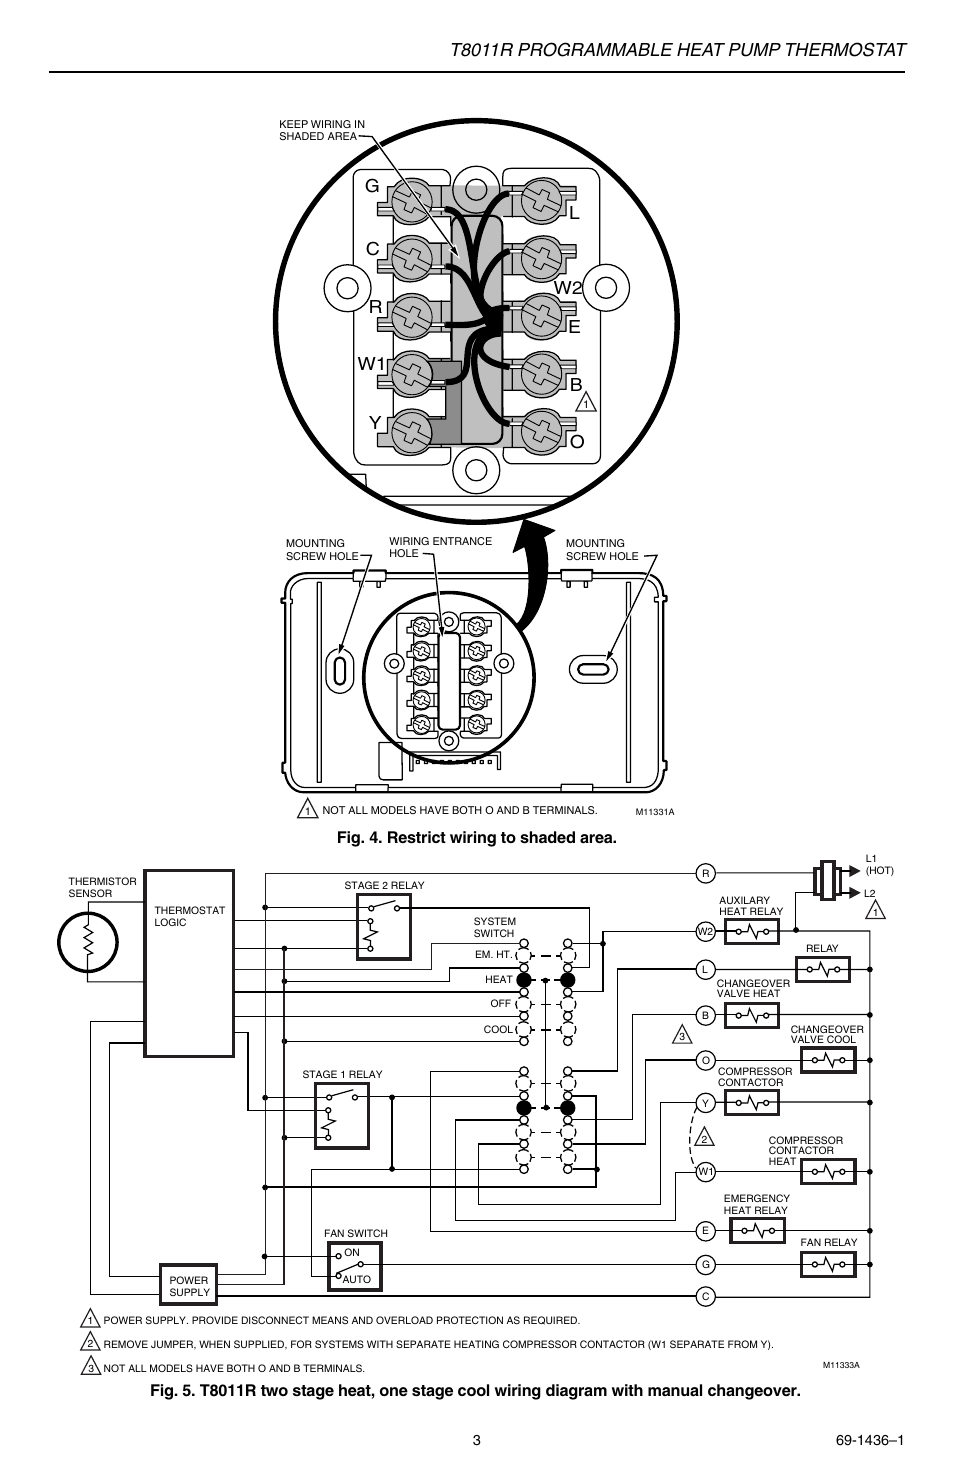 Thermostat Wiring Diagram Heat Pump / 2 Stage Heat